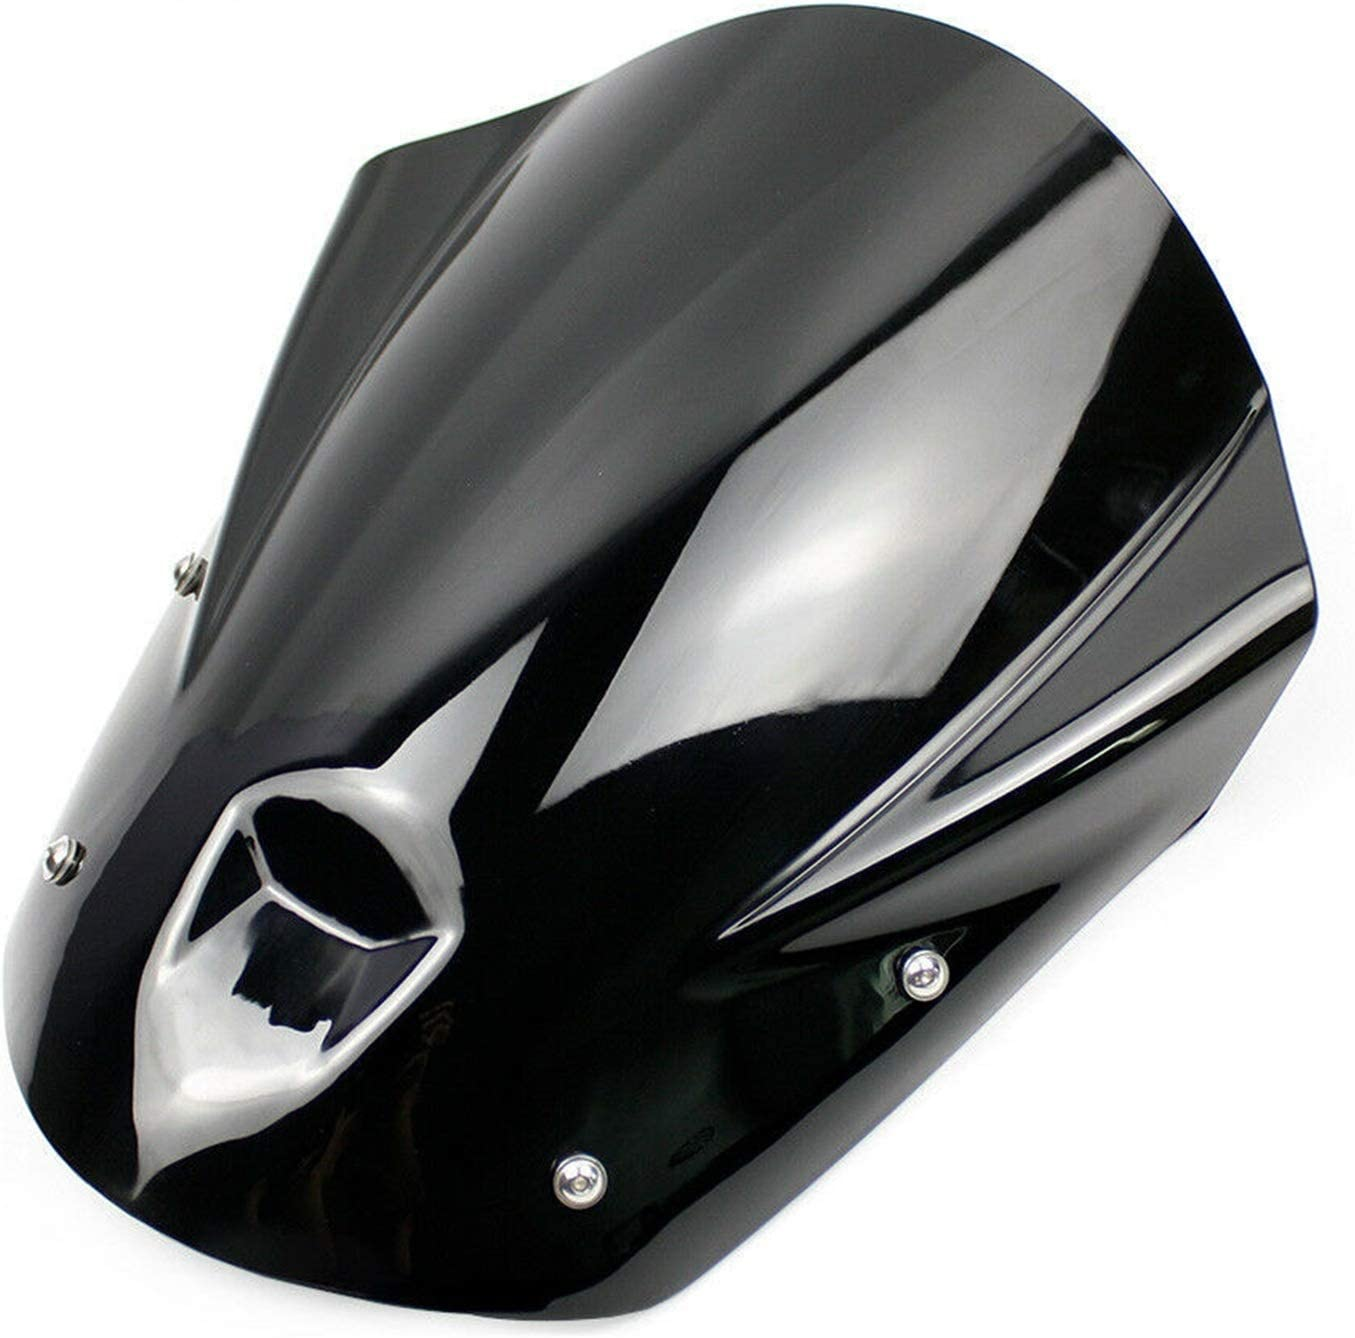 shopping Motorcycle Wind Deflector Windscreen Fit Max 48% OFF MT-09 Yamaha FZ-09 for